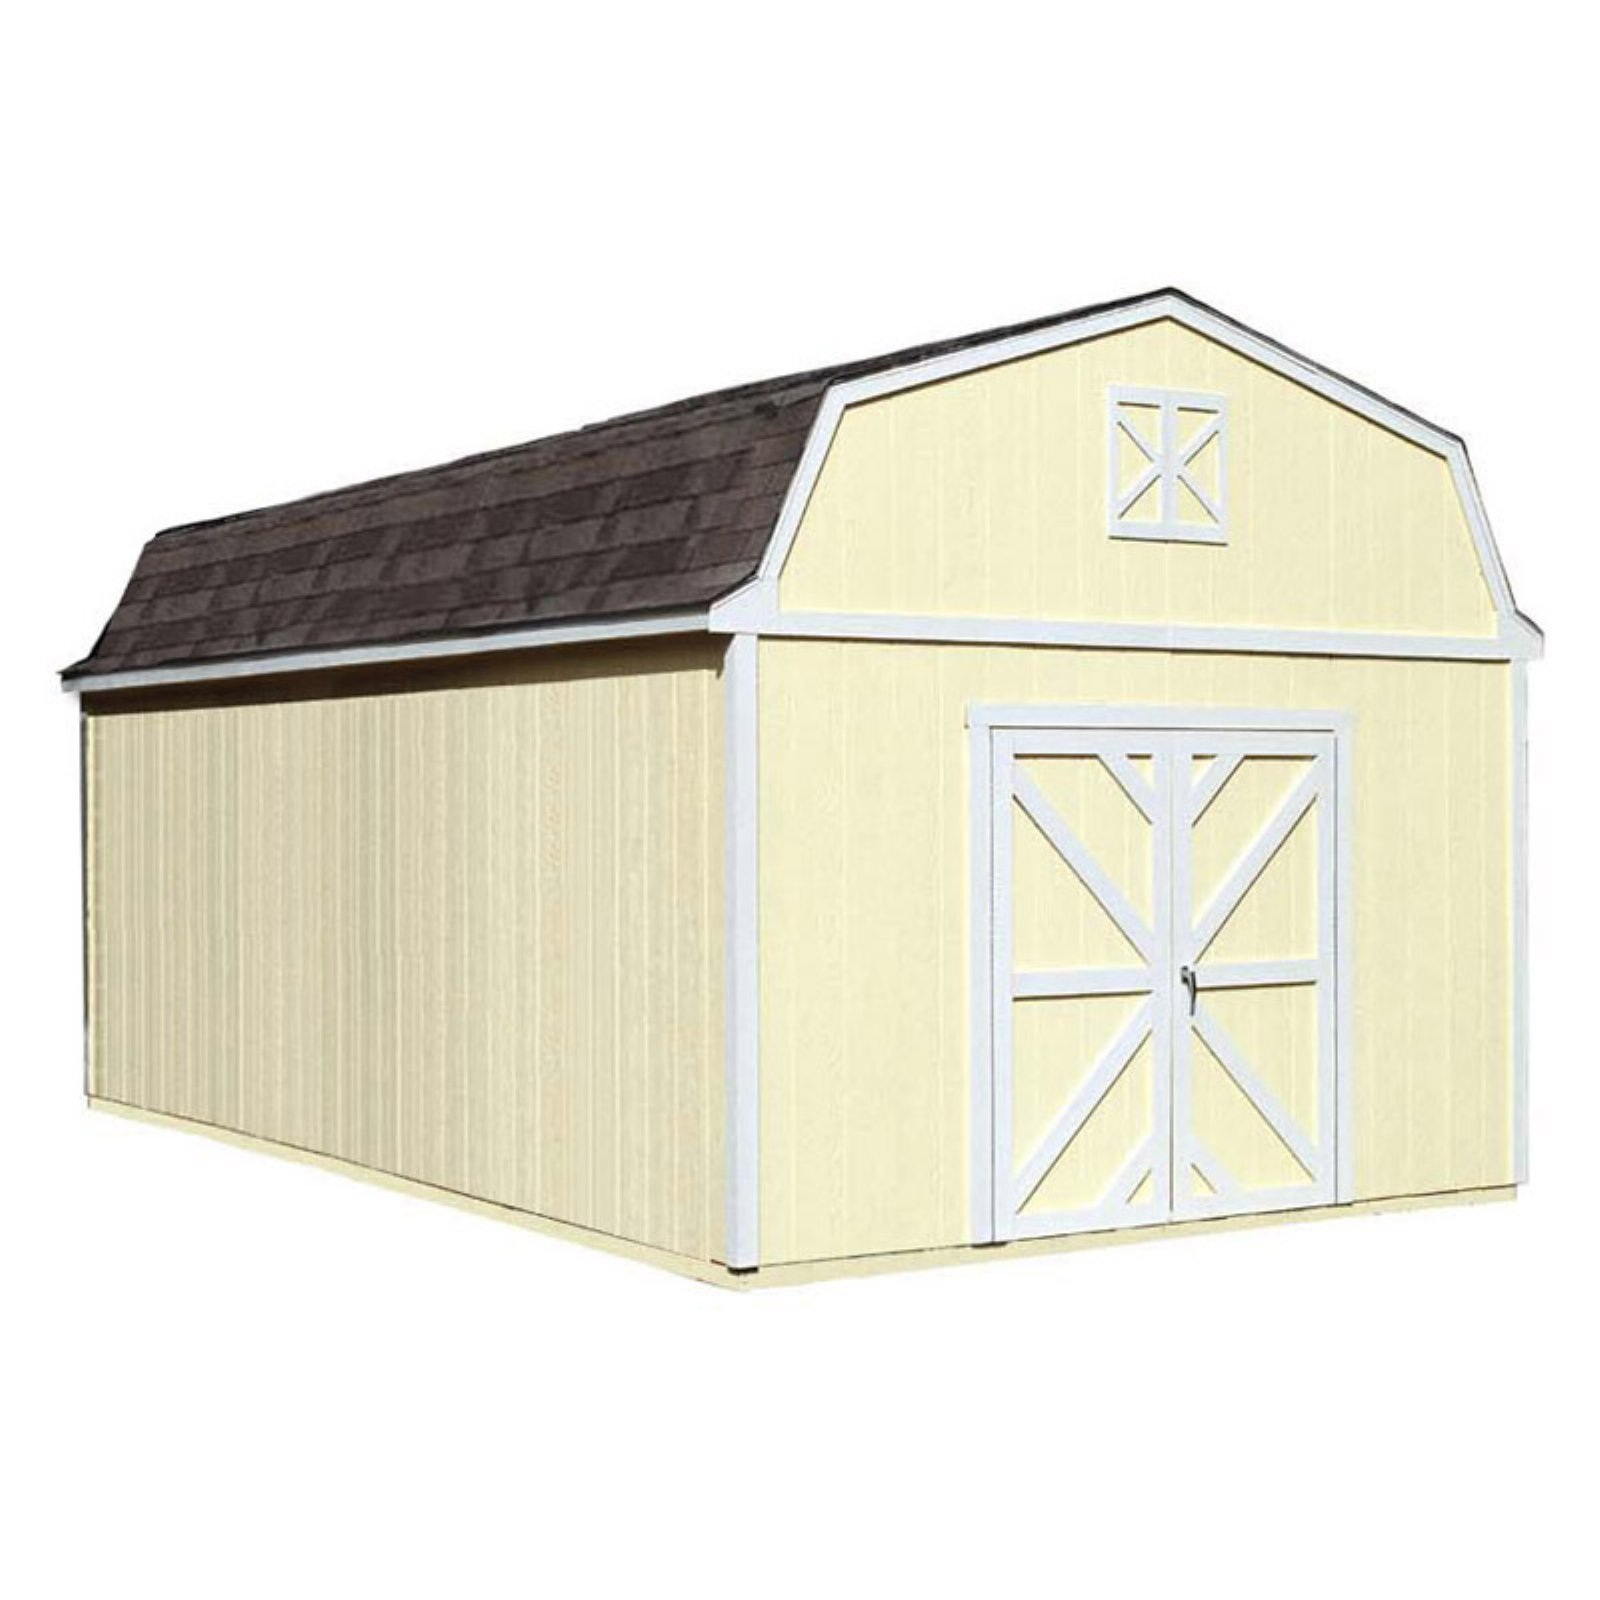 Handy Home Sequoia Storage Shed - 12 x 20 ft.